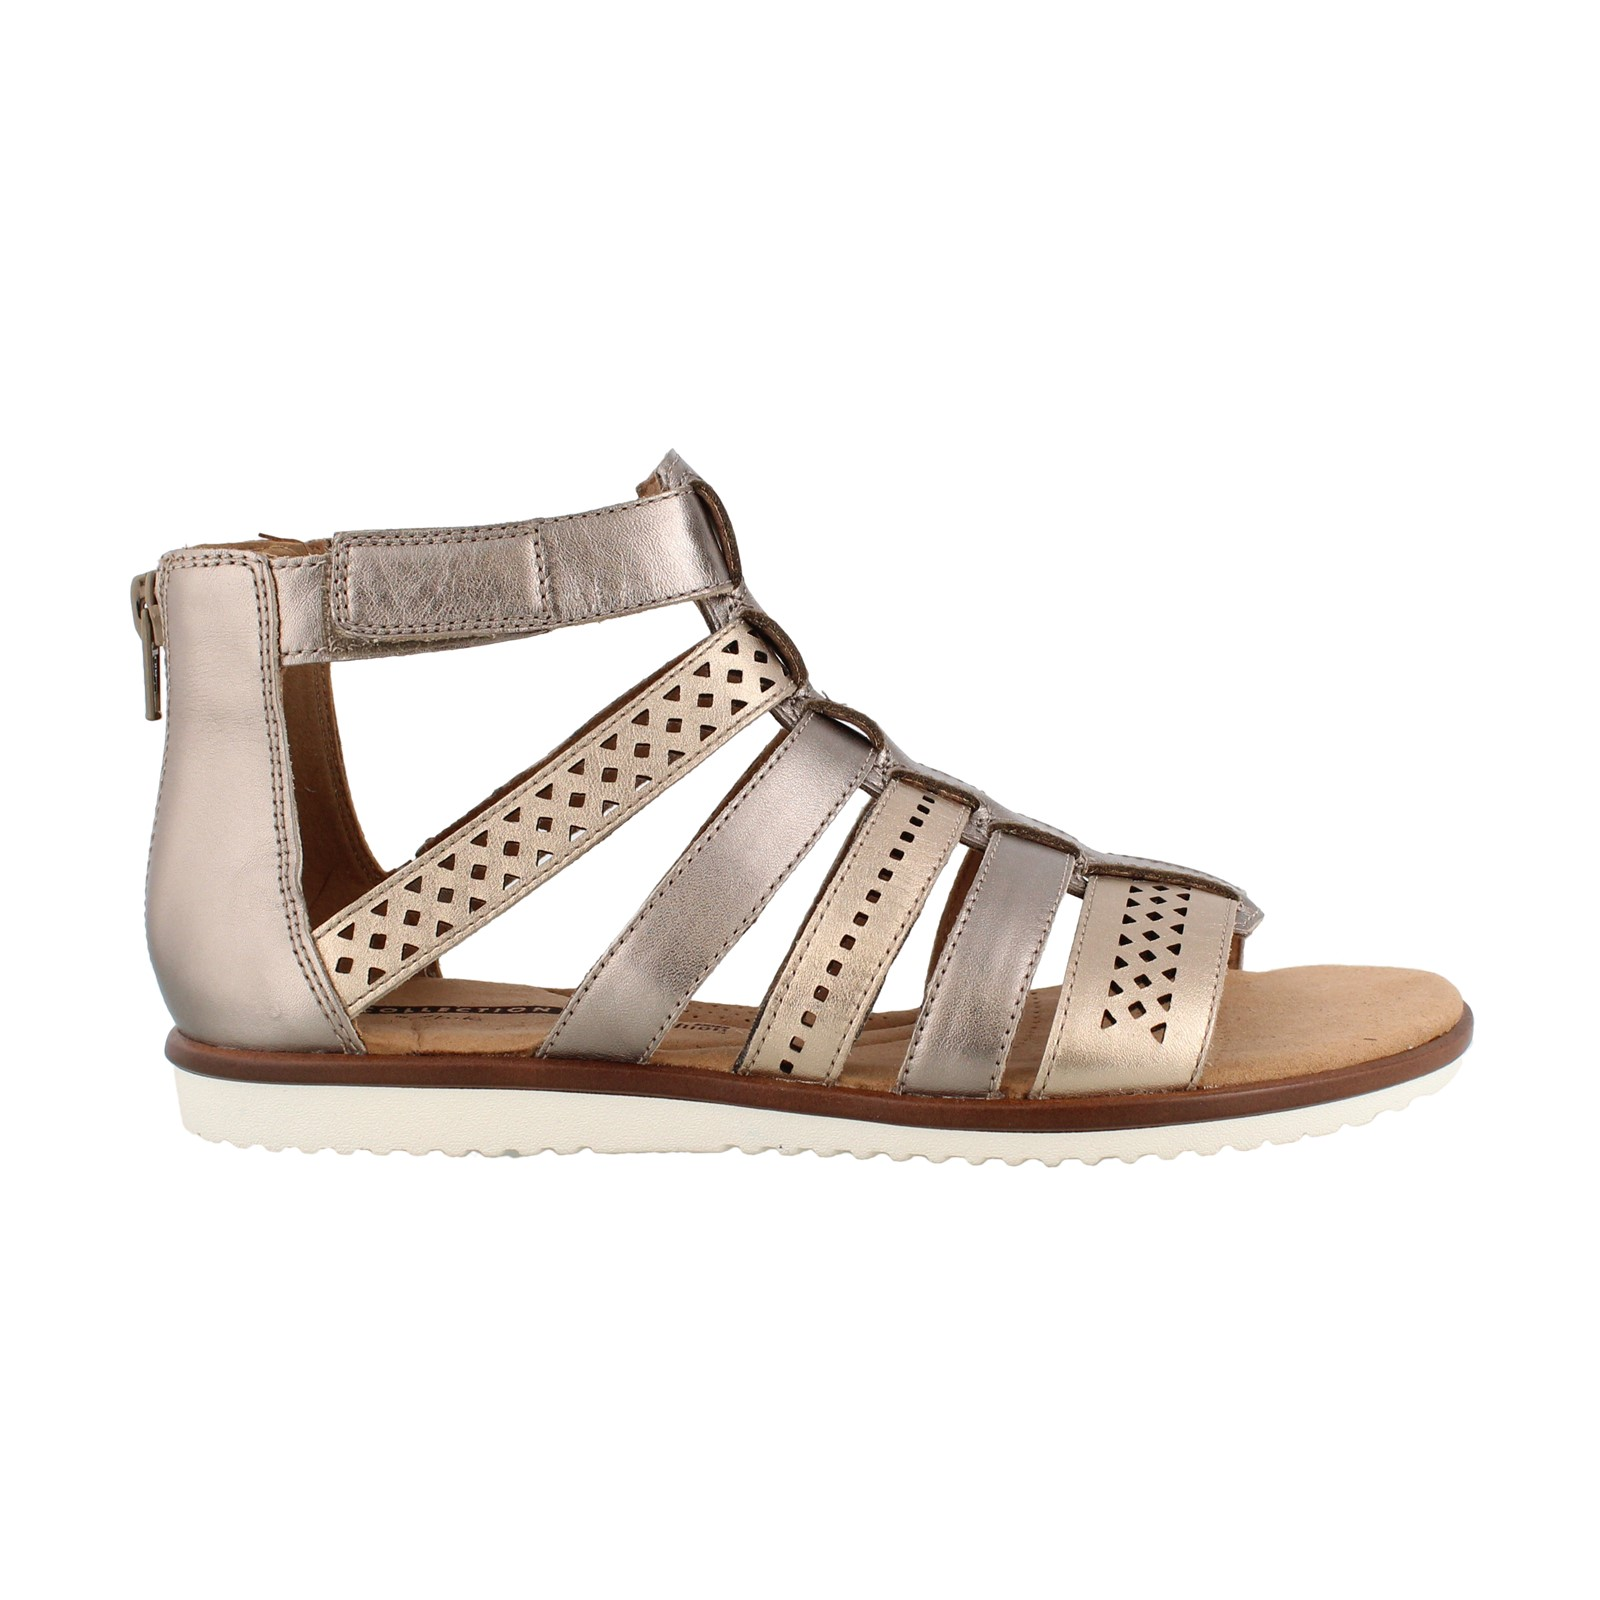 Women's Clarks, Kele Lotus Sandals